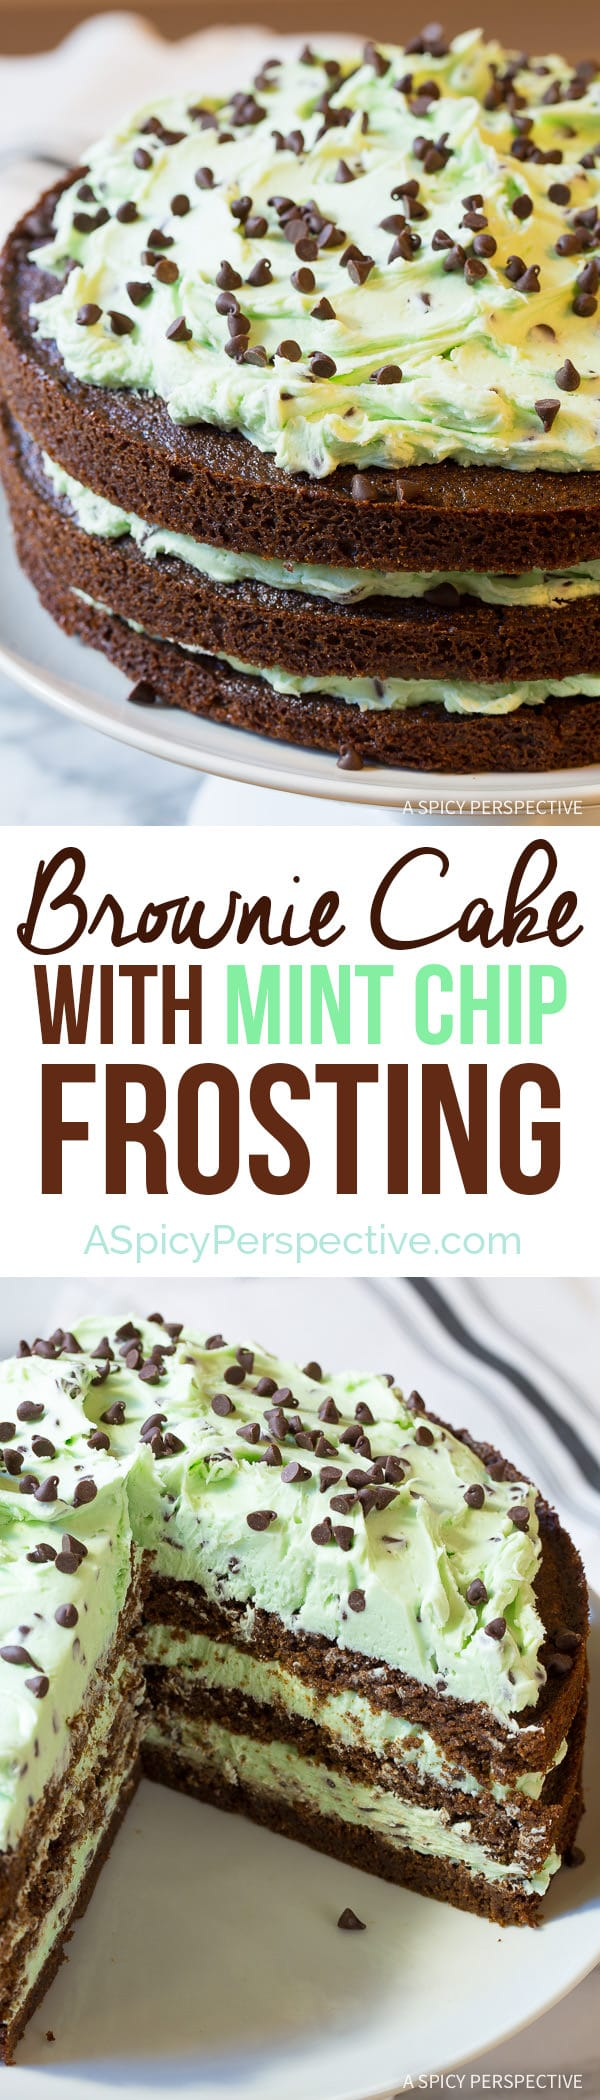 Celebrate the season with Brownie Cake with Mint Chip Frosting... Eeek!! On ASpicyPerspective.com #christmas #holidays